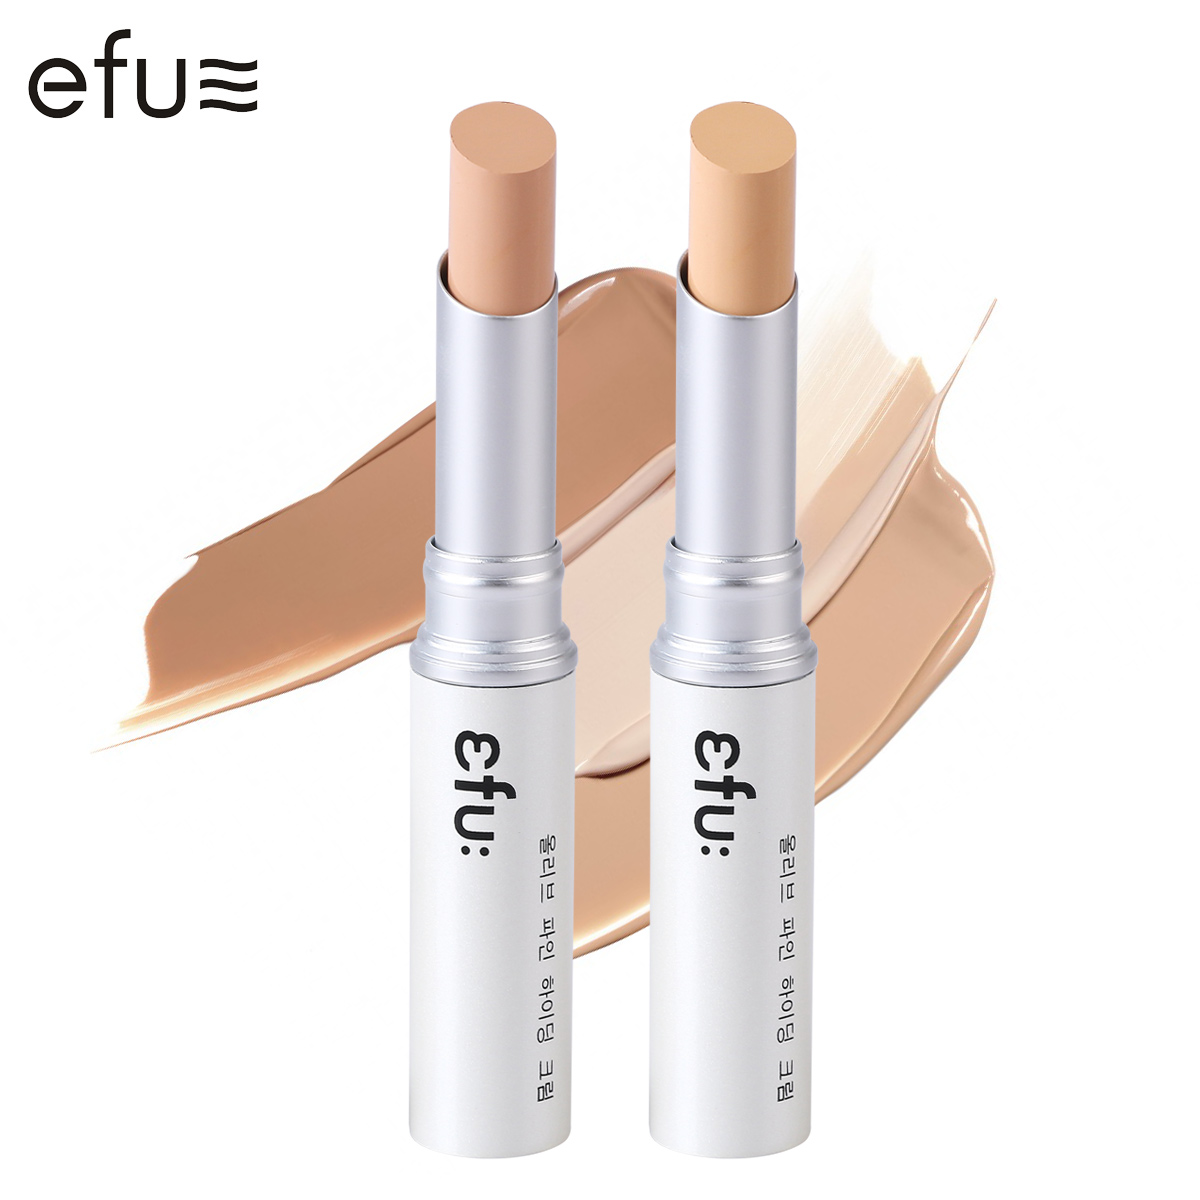 Hide The Blemish Olive Corrective Concealer 3 Colors Concealer Stick Face Creamy Healthy Base 2.6g Makeup Brand EFU #8063 ...